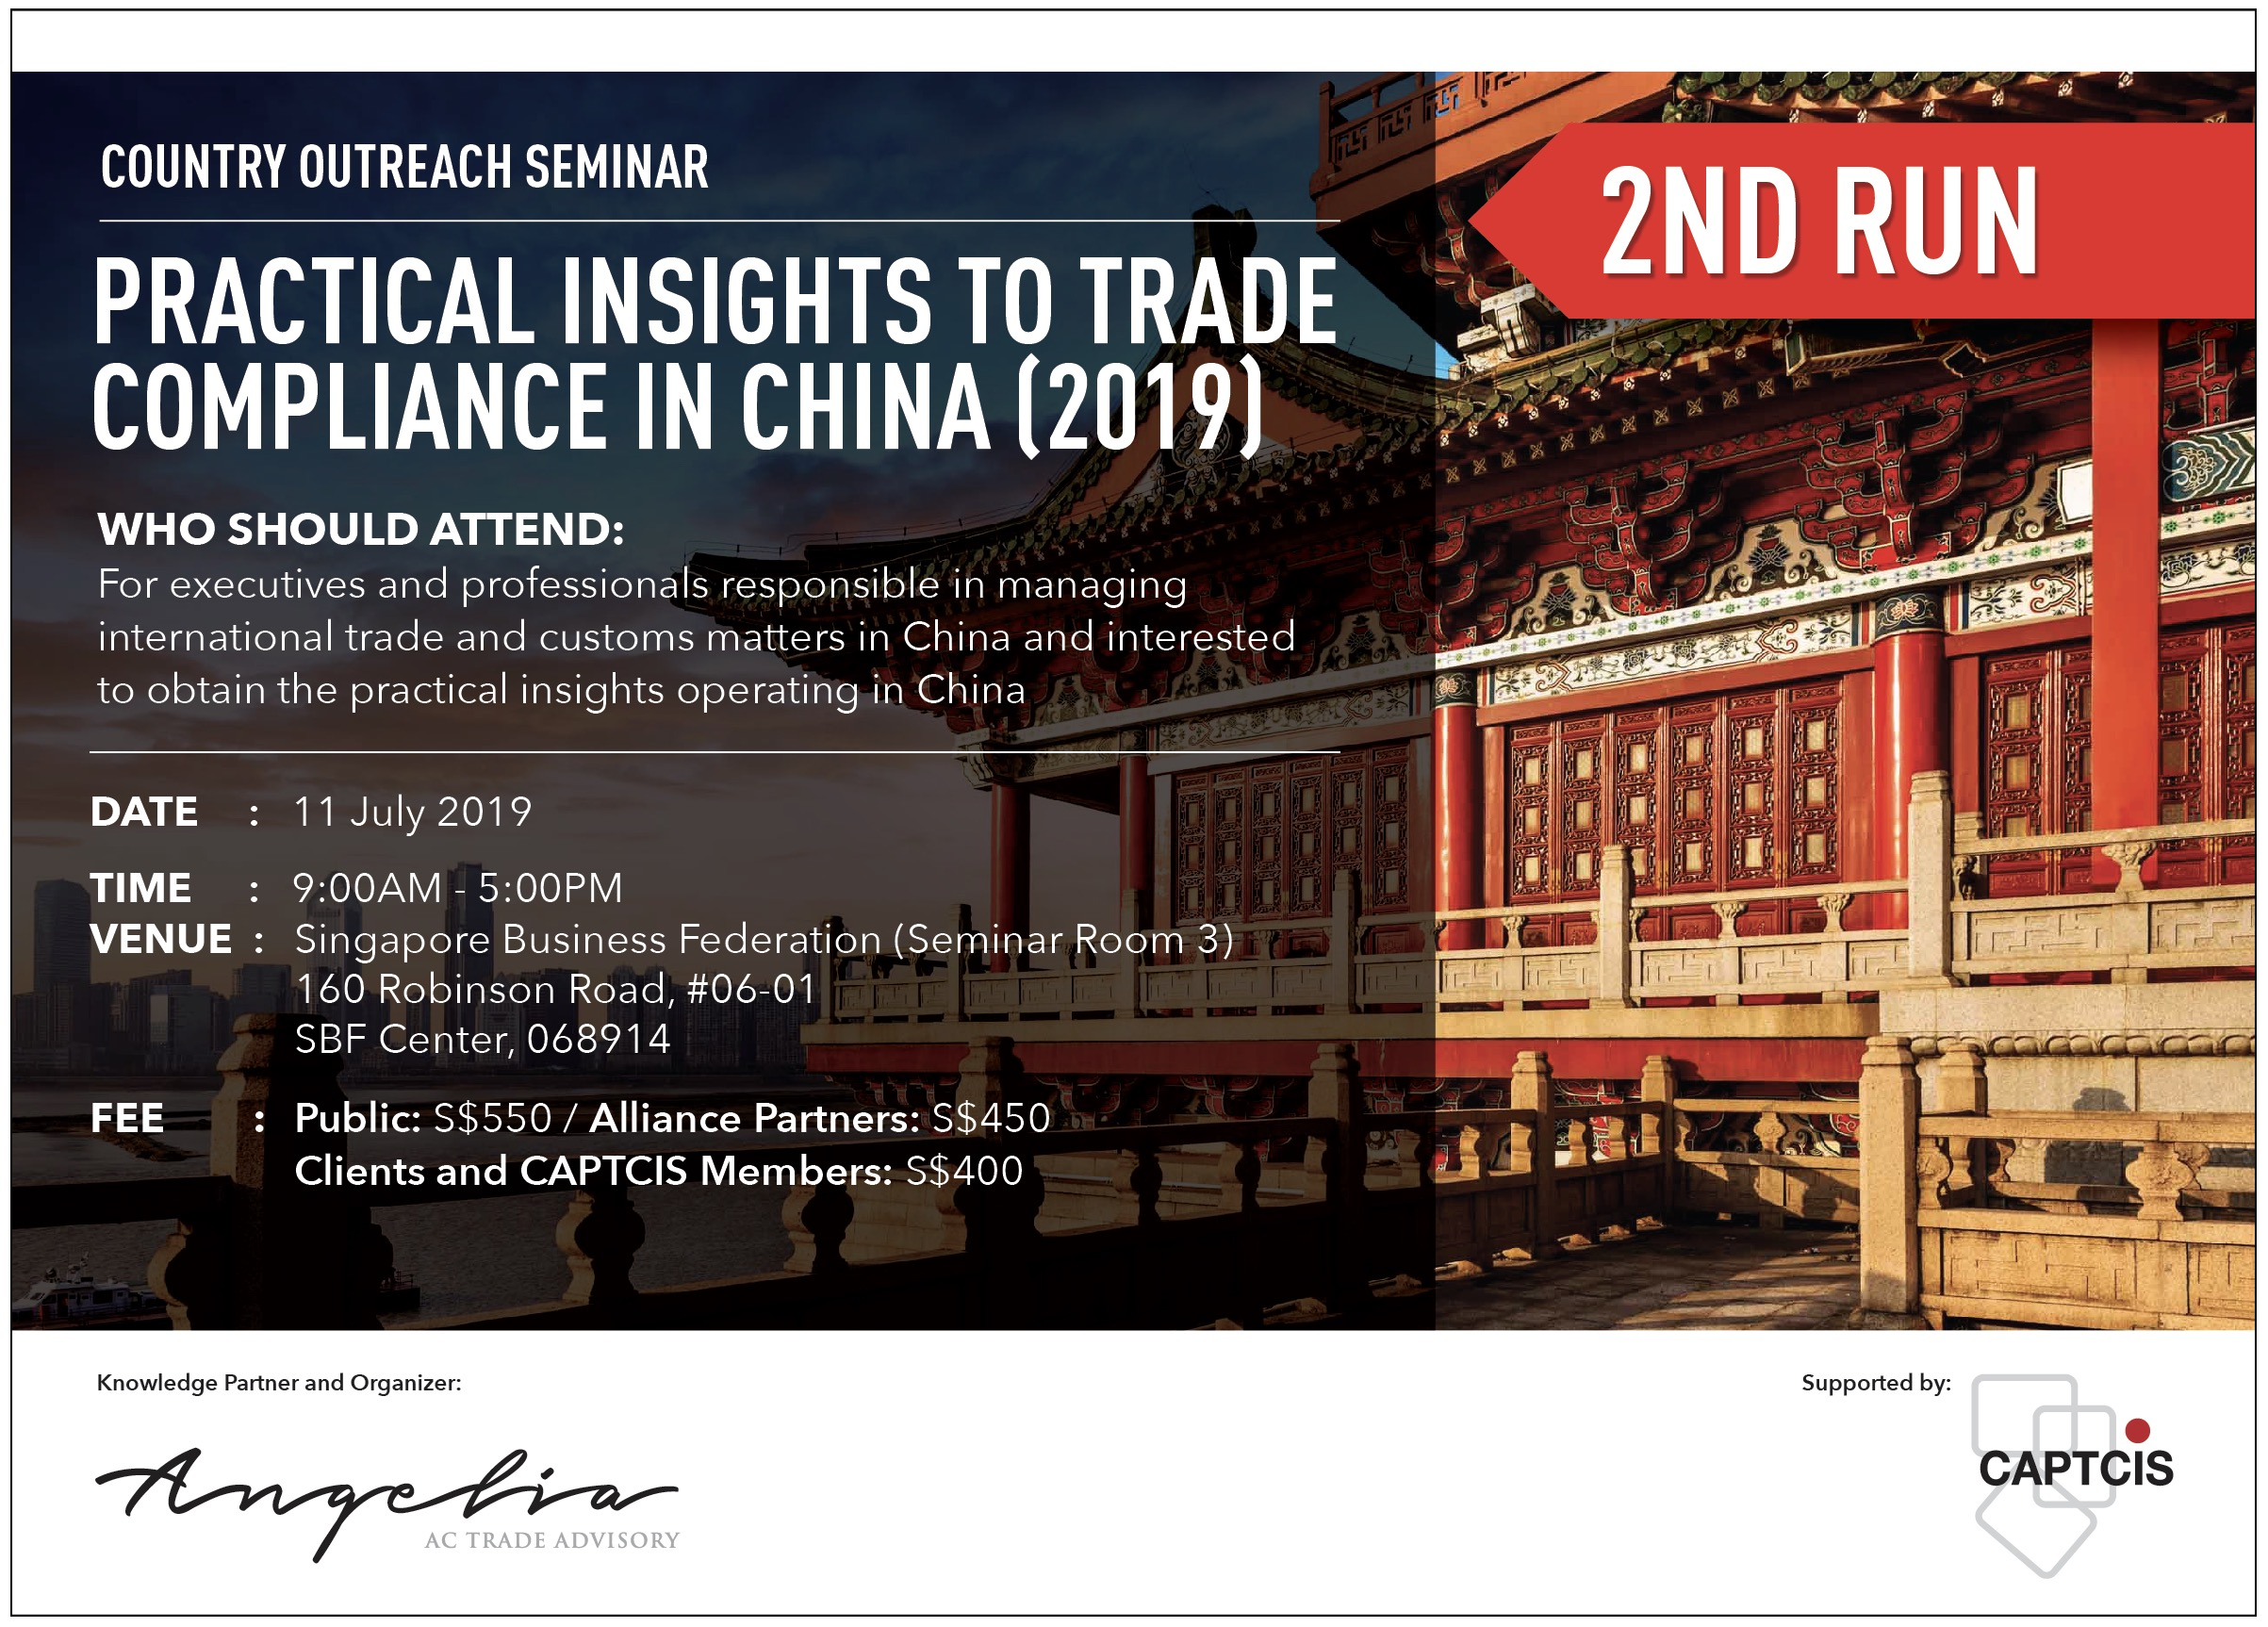 Practical Insights to Trade Compliance in China